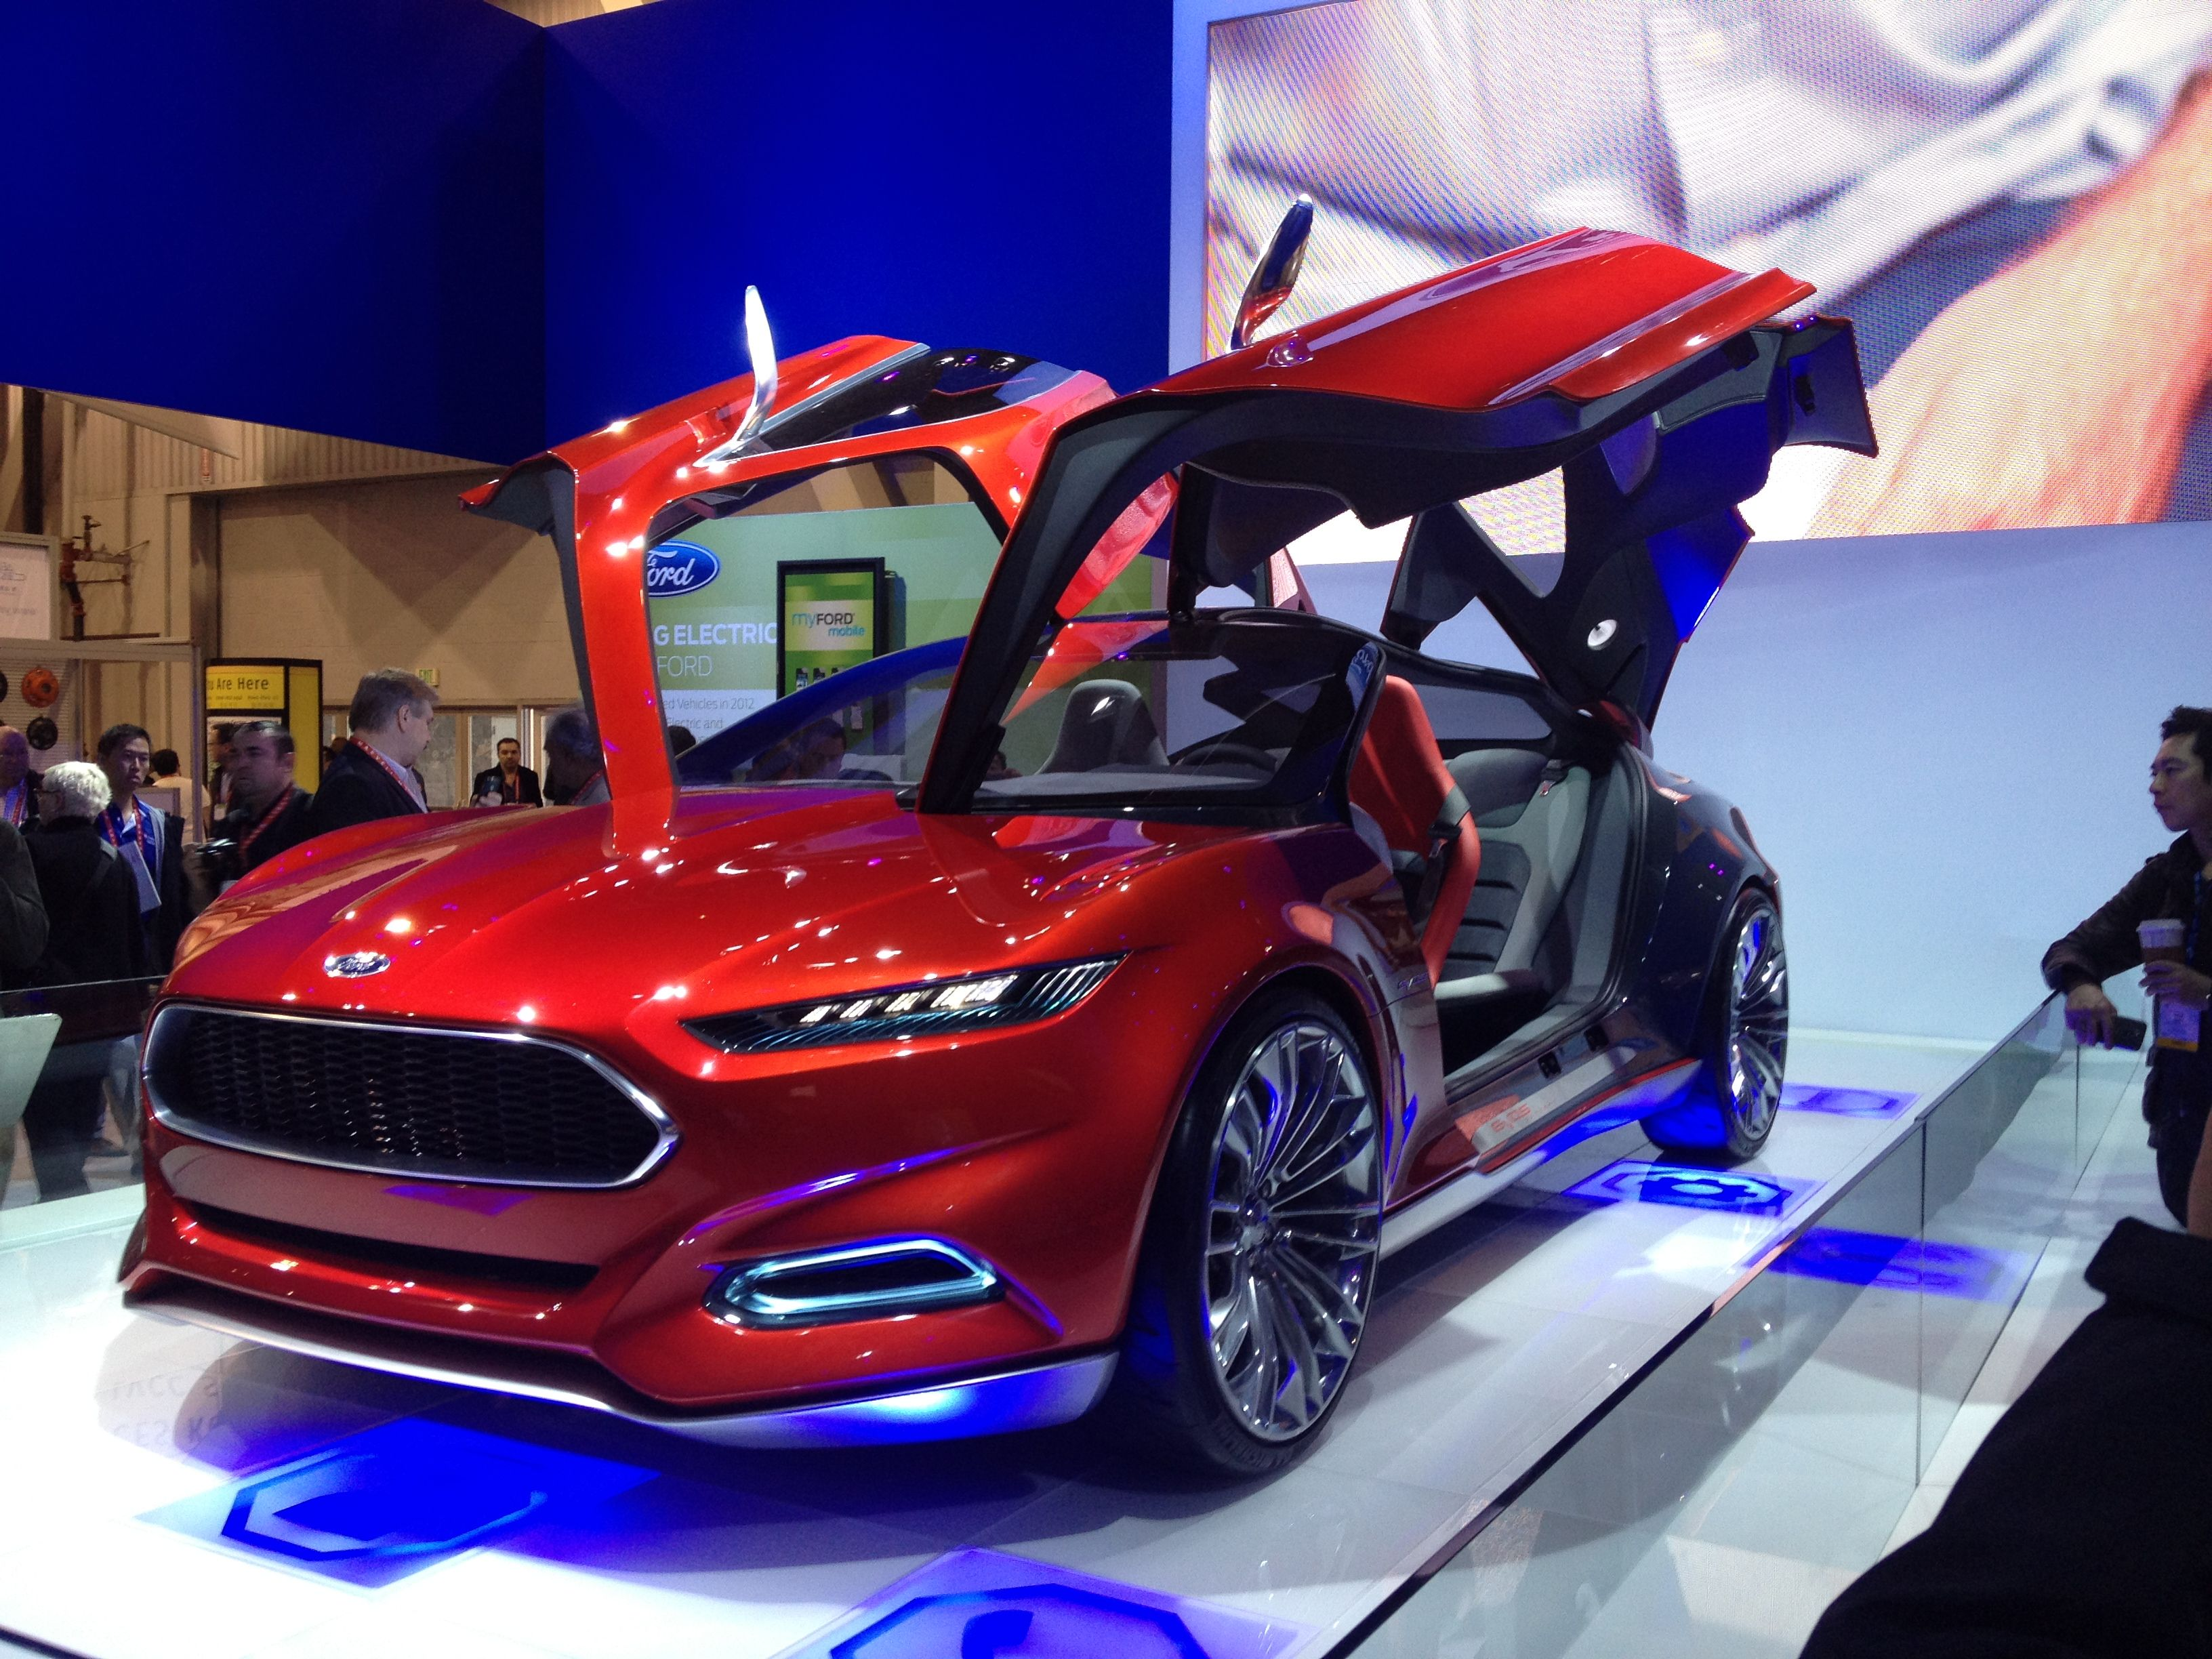 This Is An Amazing Ford Concept Car Shown At Ces Had Two Sets Of Gull Wing Style Doors Ford Fusion Custom Ford Fusion Ford